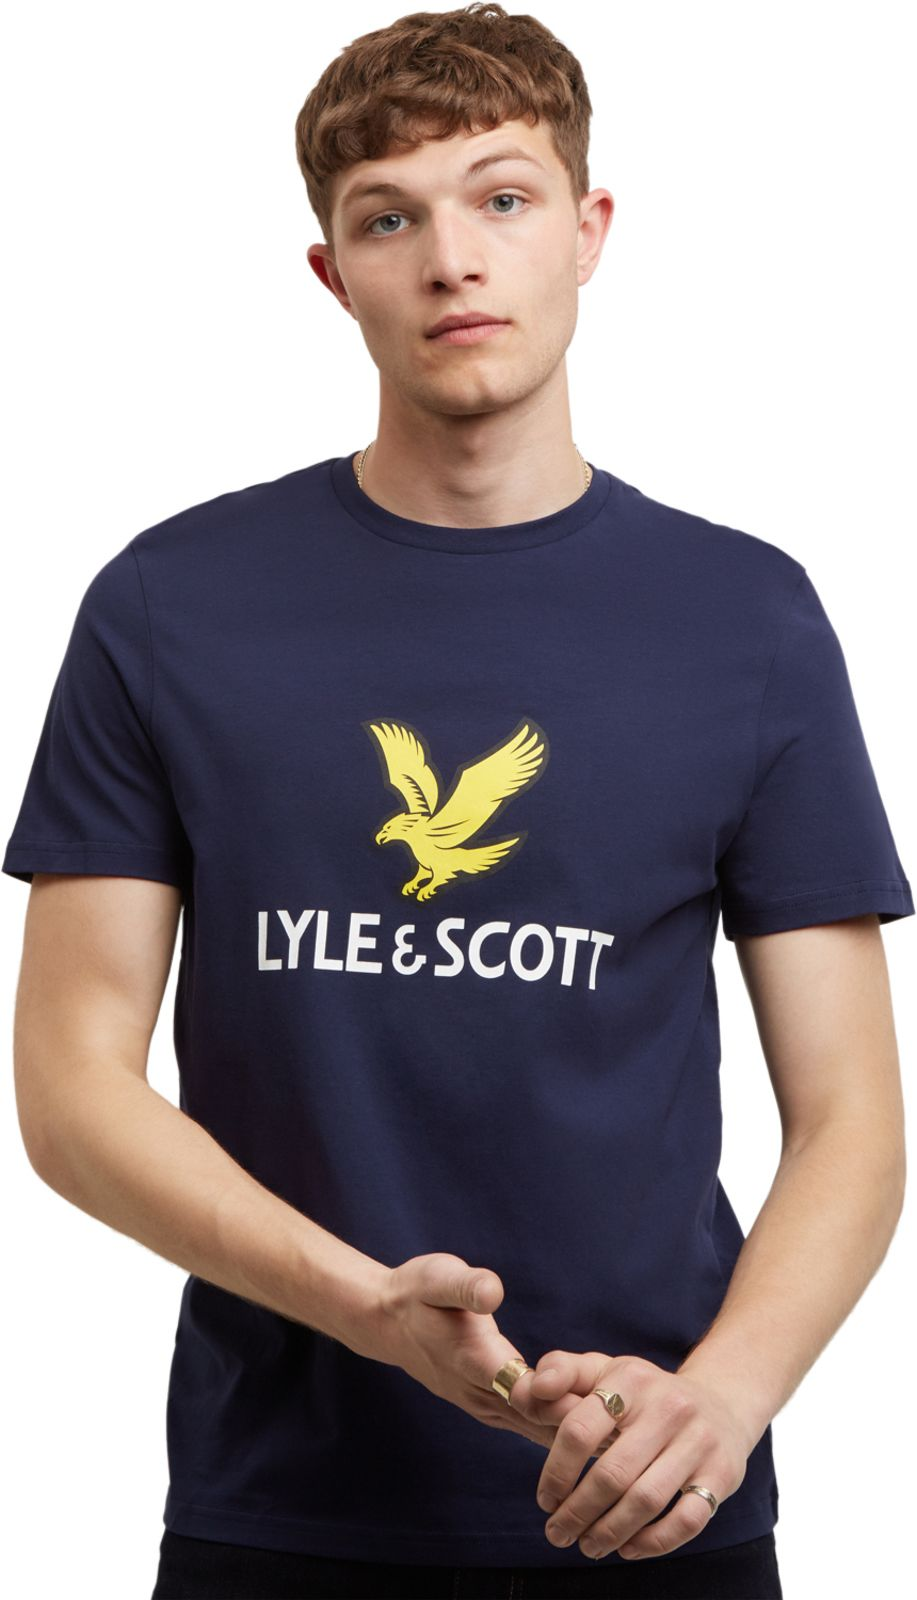 Lyle & Scott Logo T-Shirt